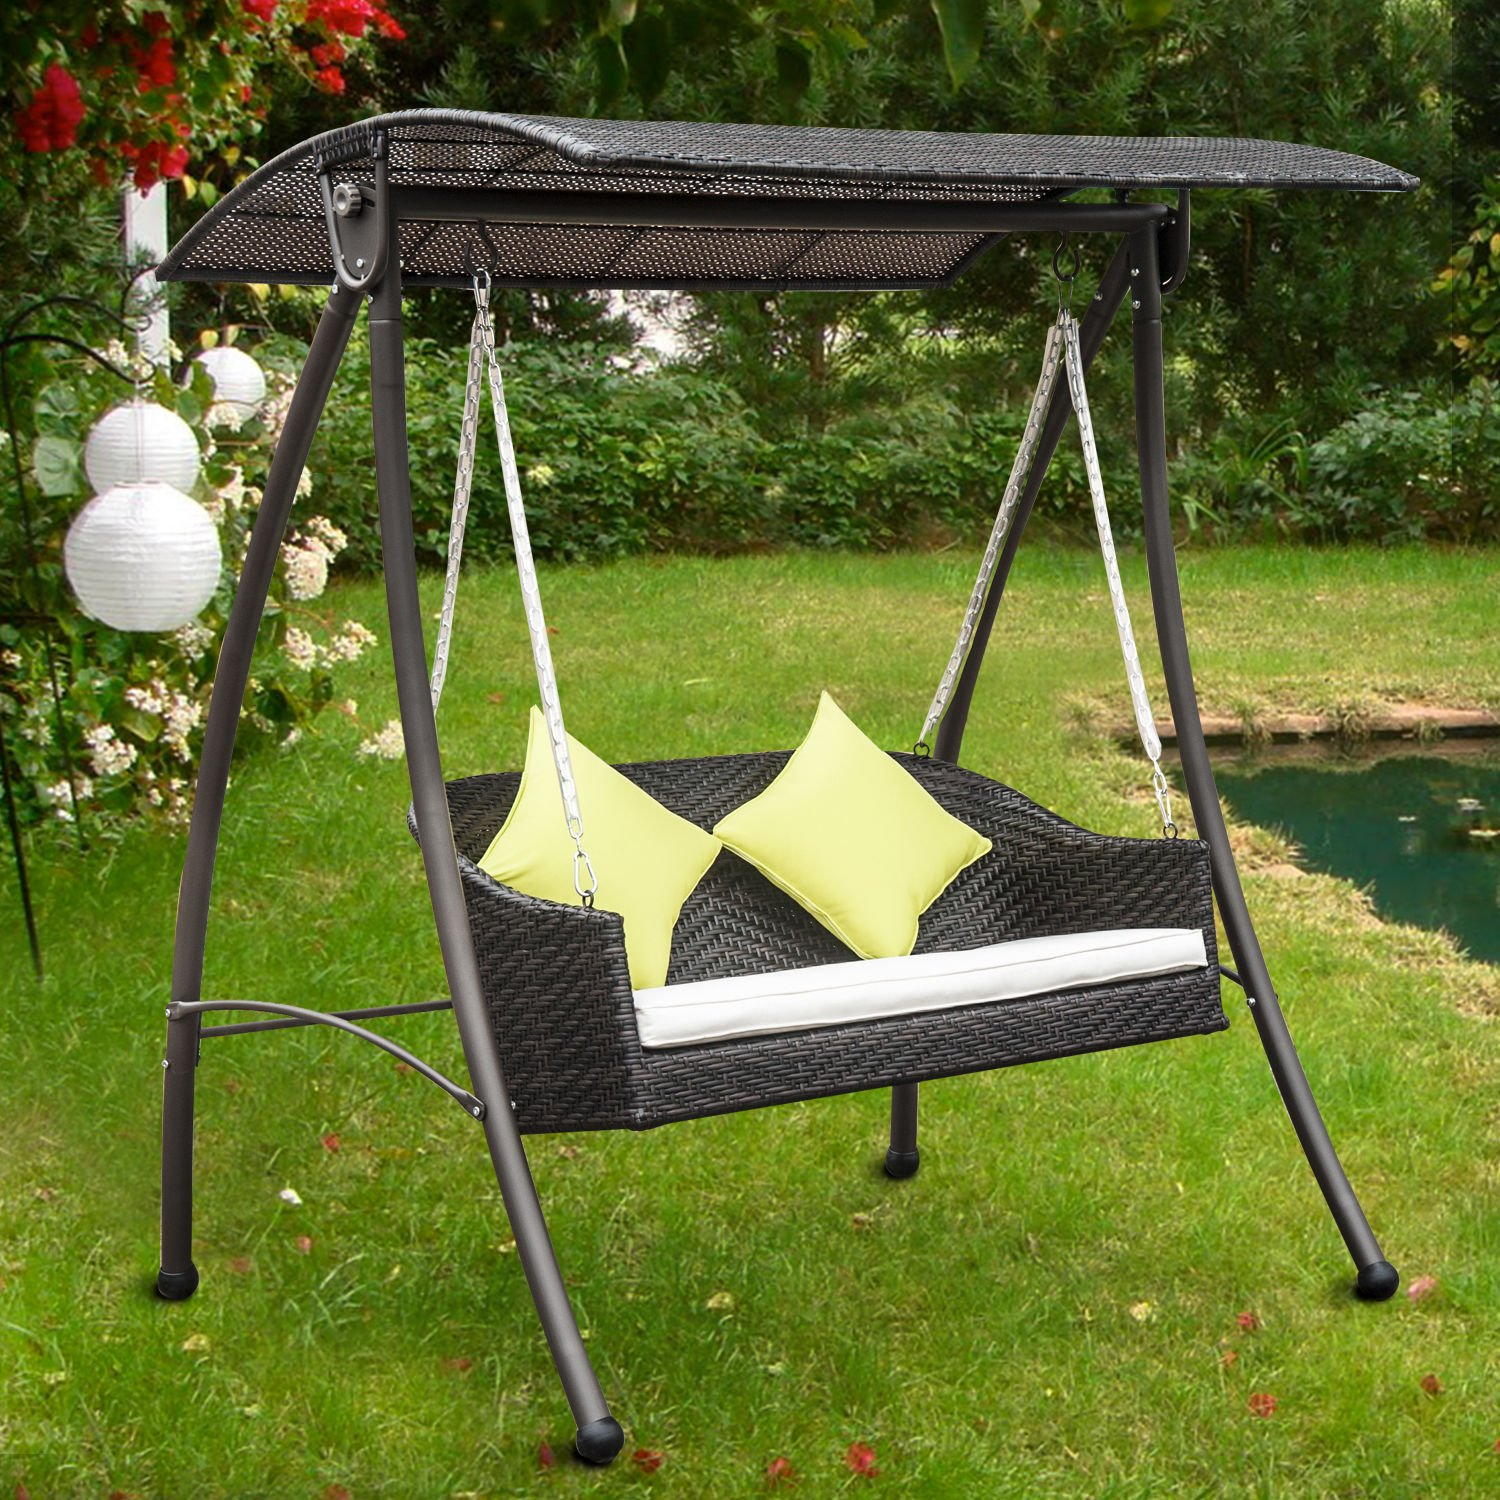 hg stand air chaise wh chair hammock swing new arc lounger canopy itm porch hanging swinging